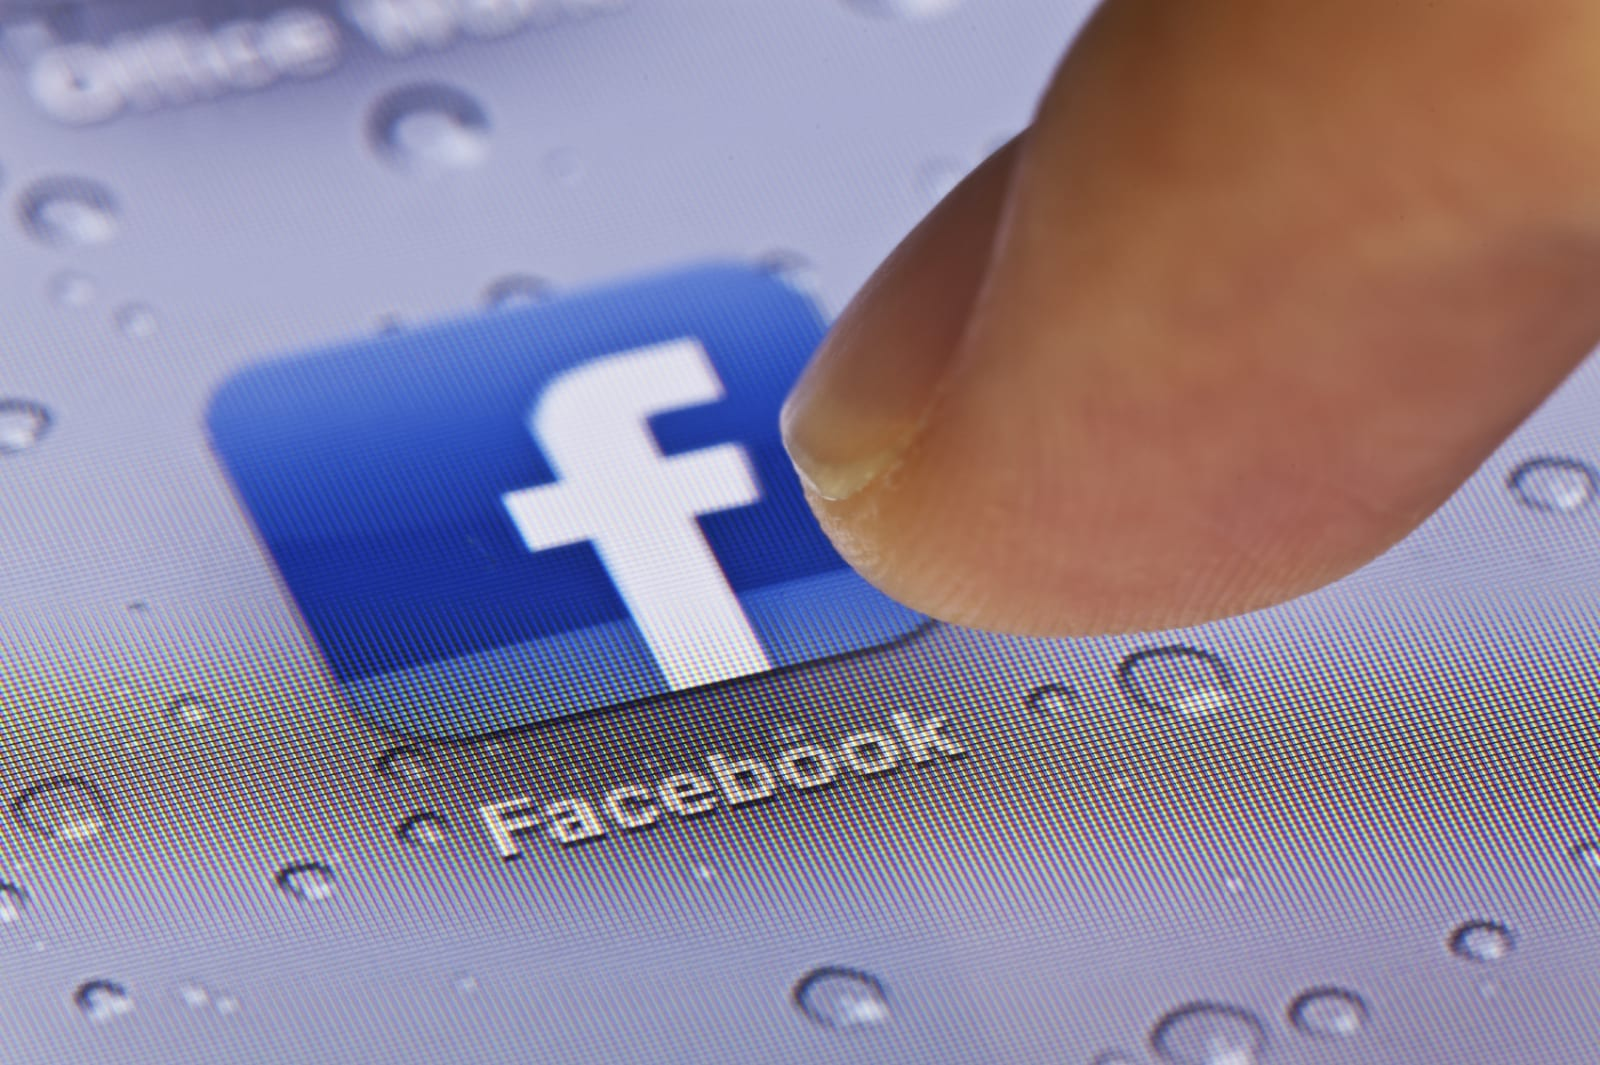 facebook-flushes-the-fakes-pages-lose-likes.jpg